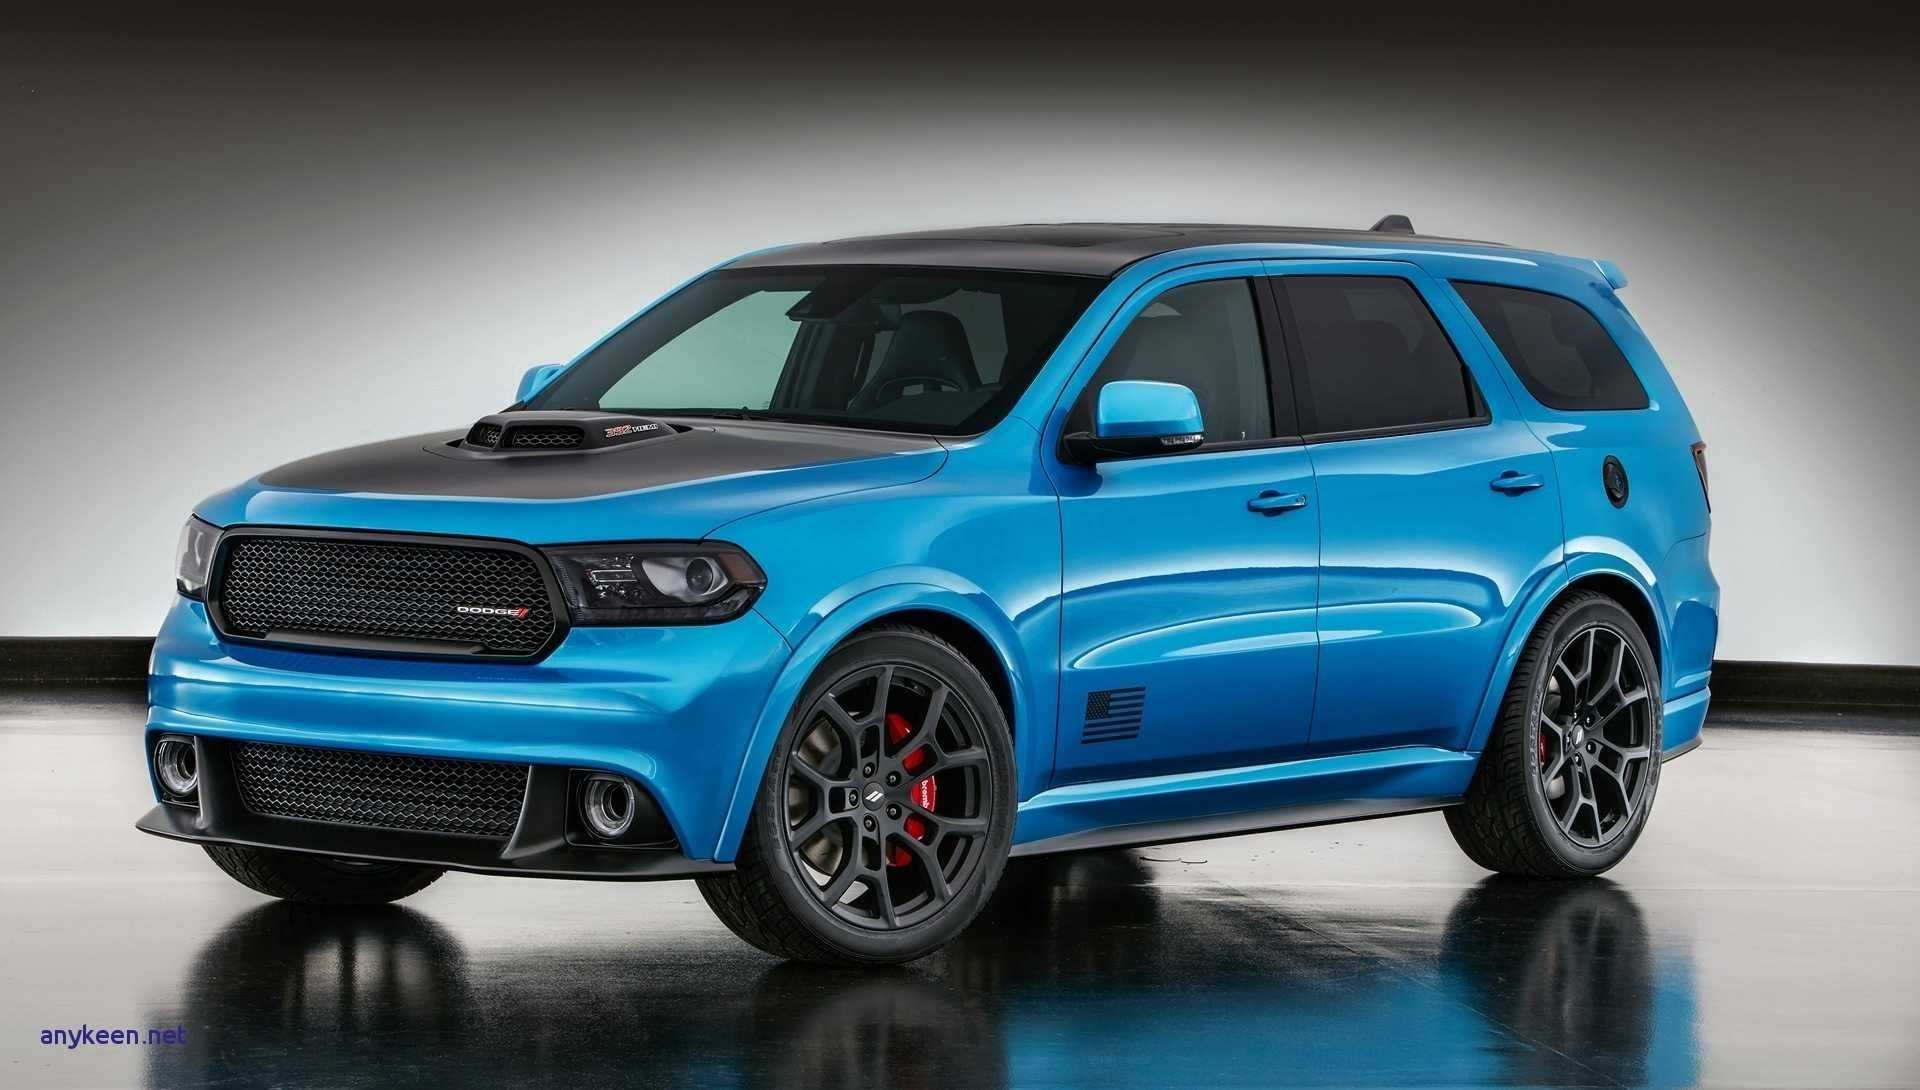 40 New 2019 Dodge Durango Srt Release Date Rumors